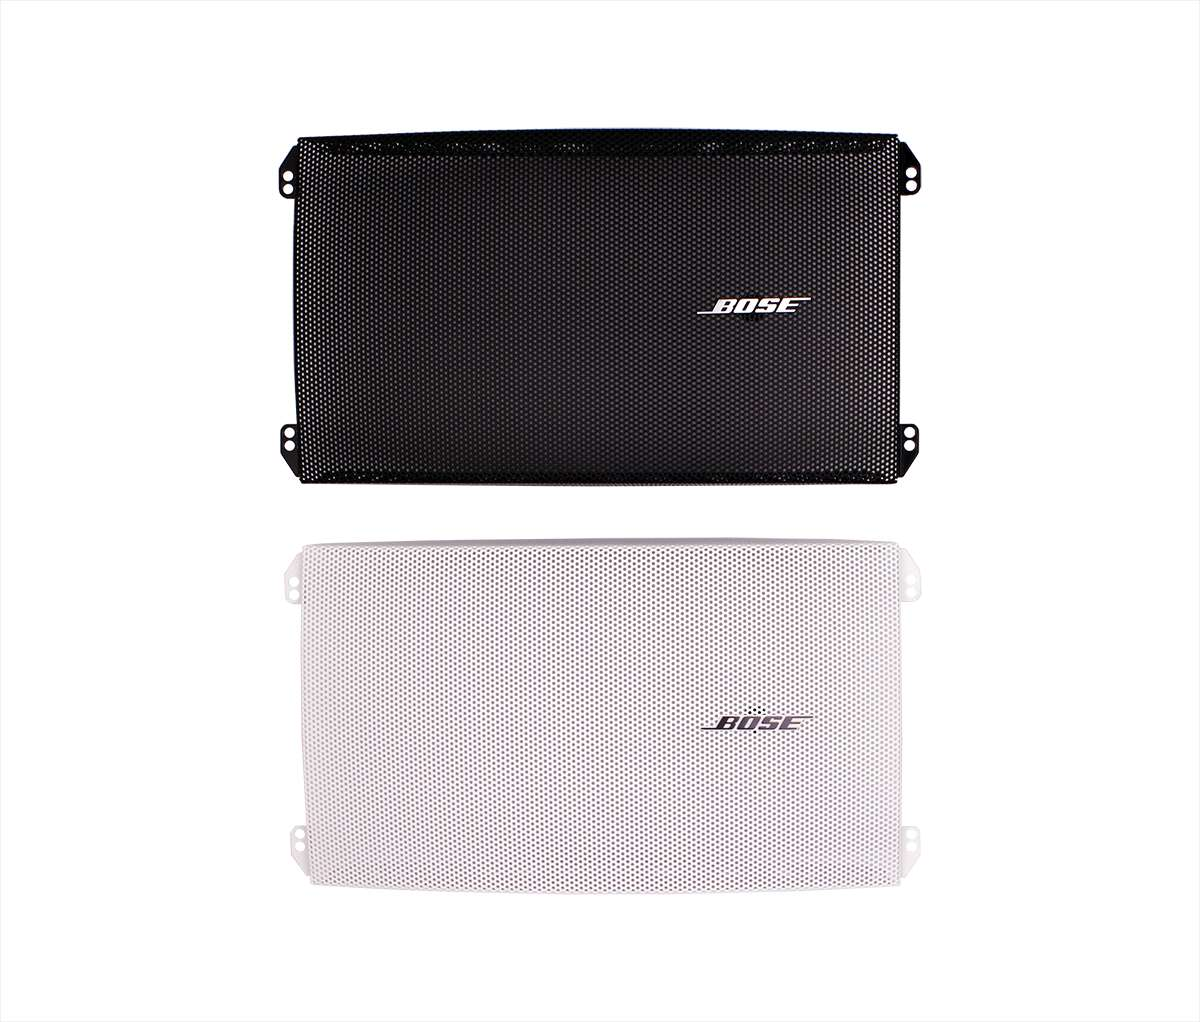 bose-freespace-ds-16se-aluminum-grill-weiay-paar-zubeha-r